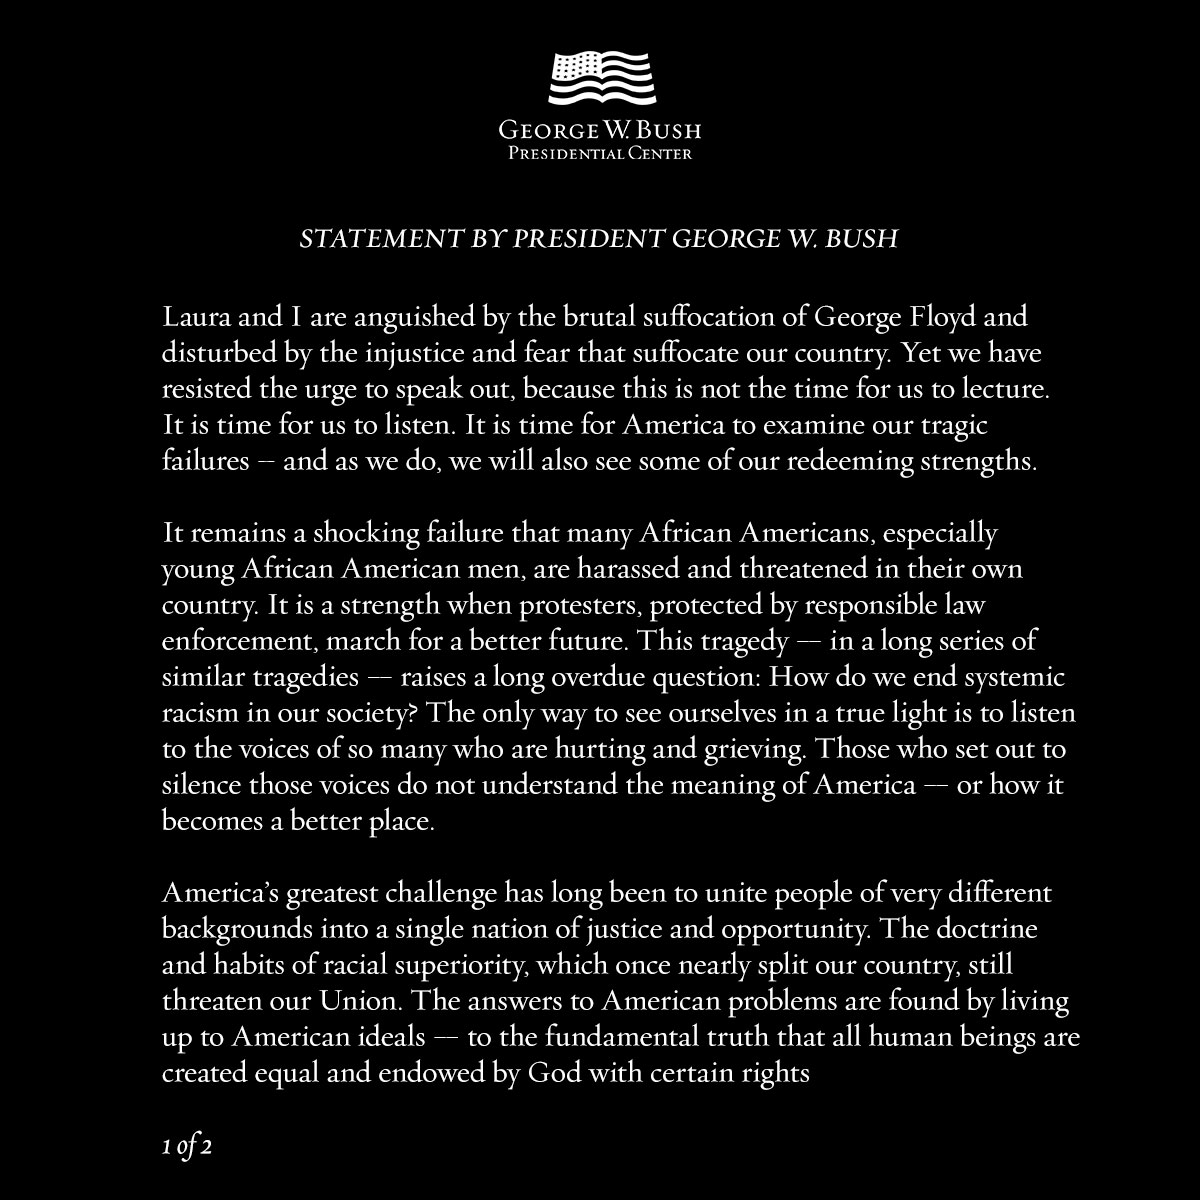 Statement by President George W. Bush